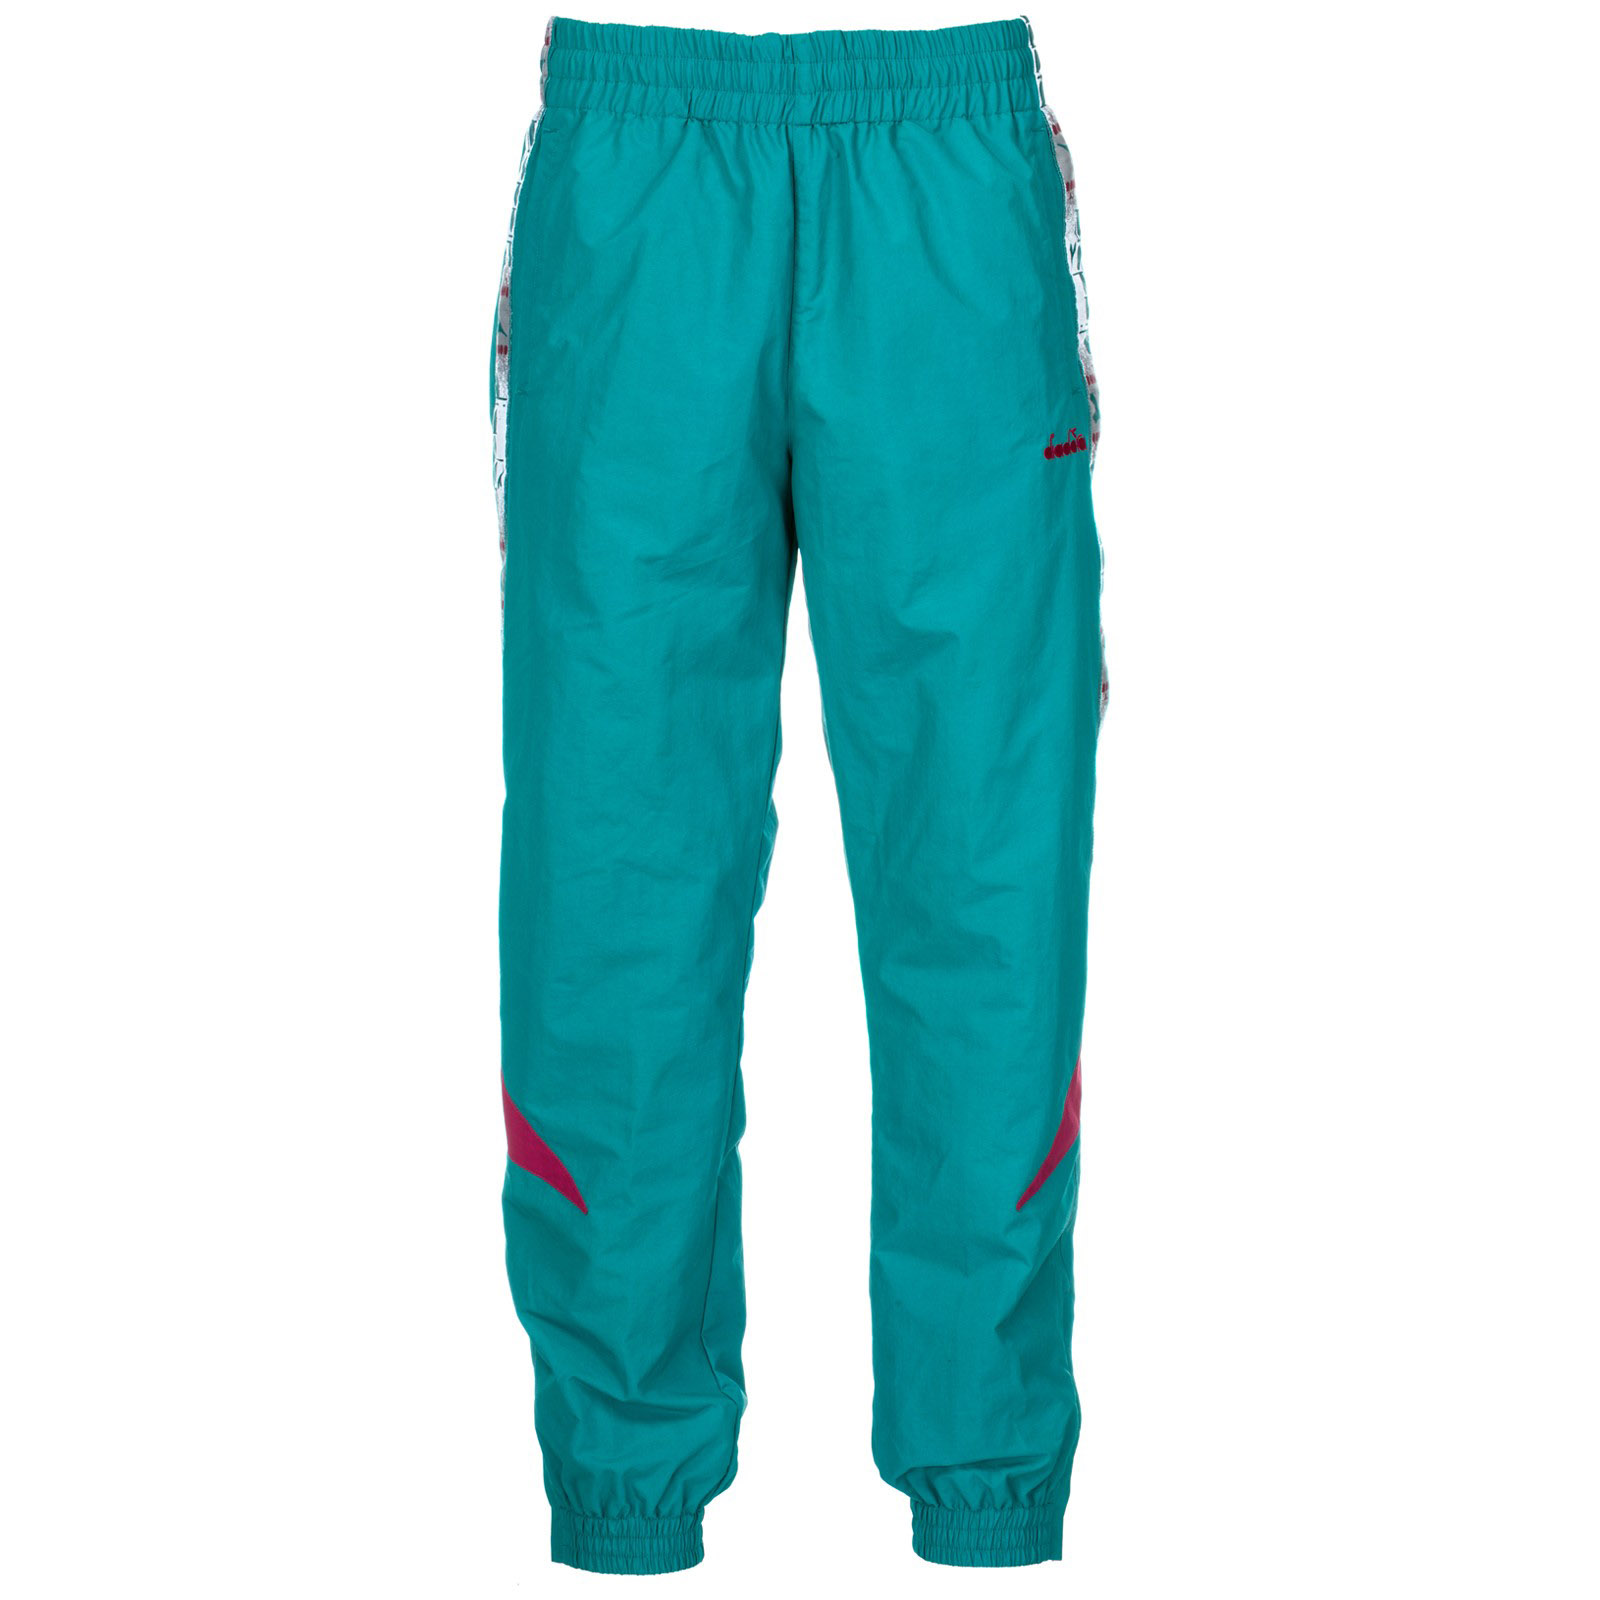 0ae0d691 Men's sport tracksuit trousers